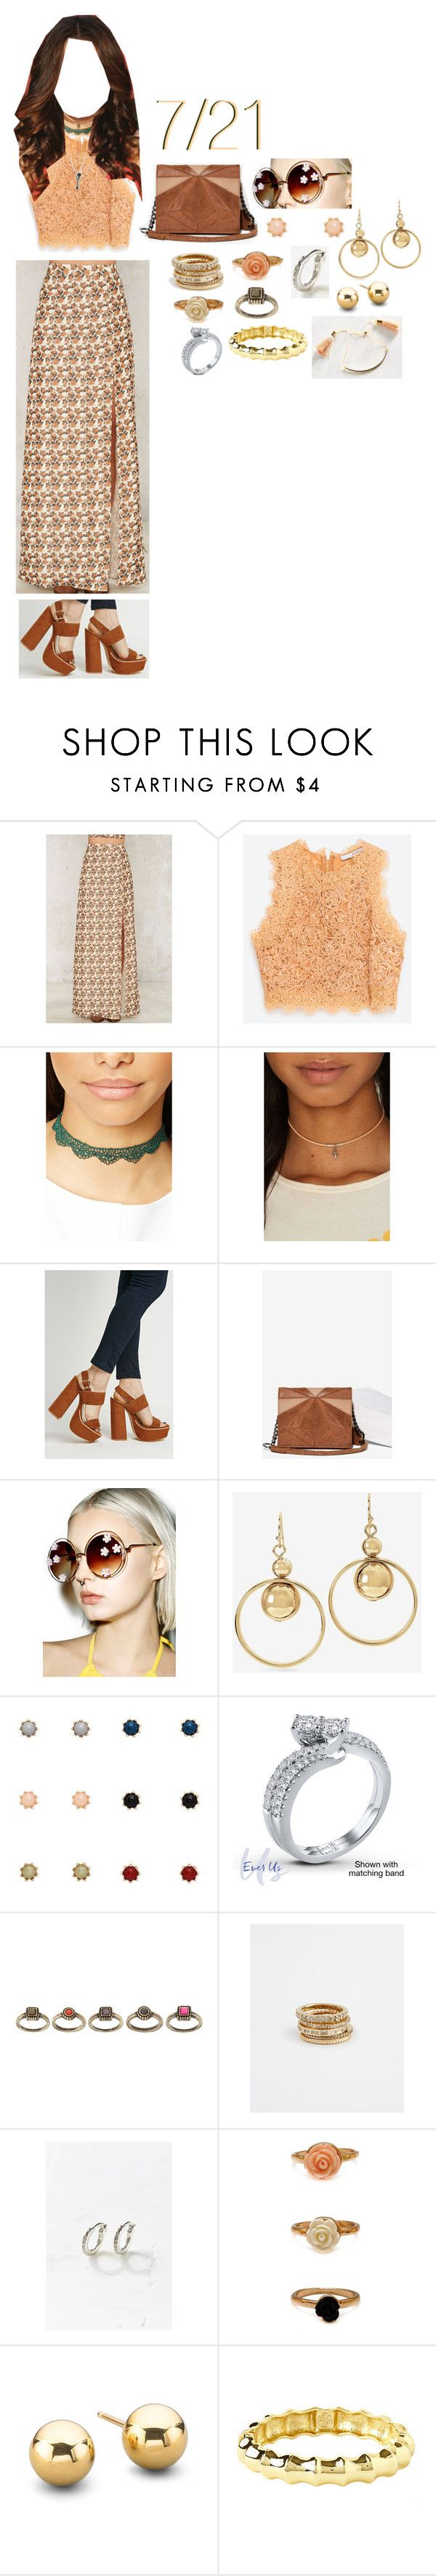 """""""7.21.16"""" by gfc-account ❤ liked on Polyvore featuring Nightwalker, Forever 21, Frasier Sterling, Sam Edelman, Gasoline Glamour, White House Black Market, ASOS, Ann Taylor, Adina Reyter and Lilly Pulitzer"""